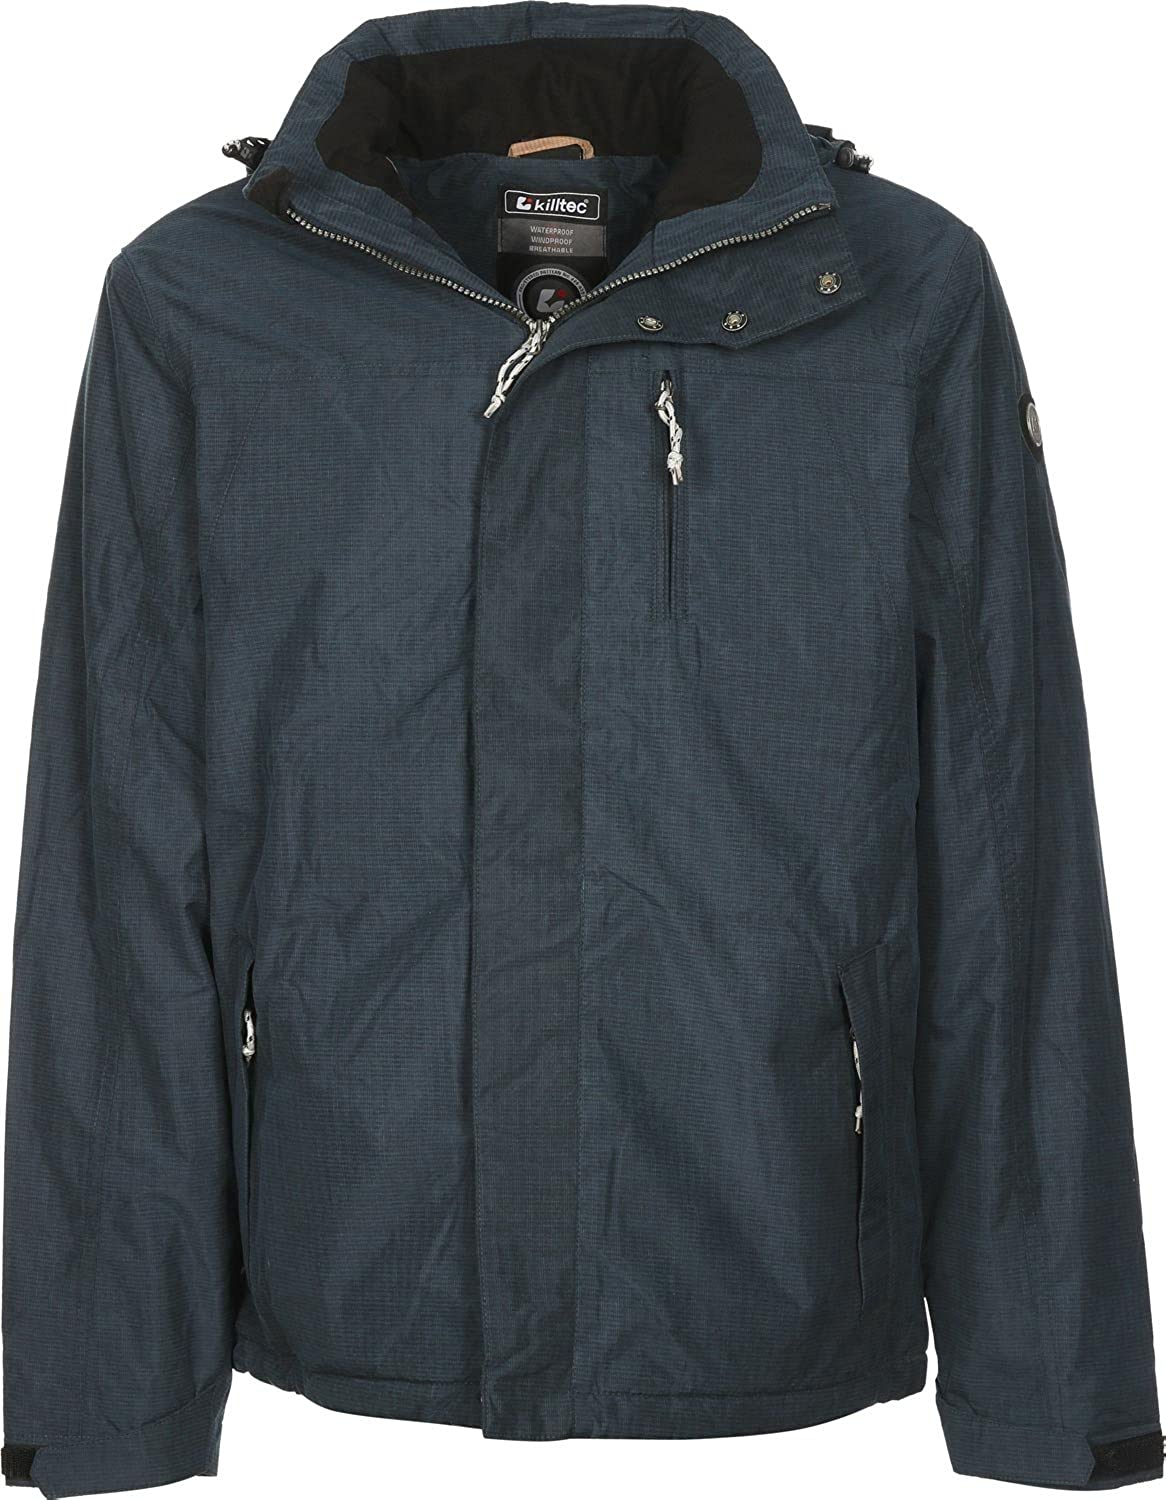 Killtec Malok Winterjacke